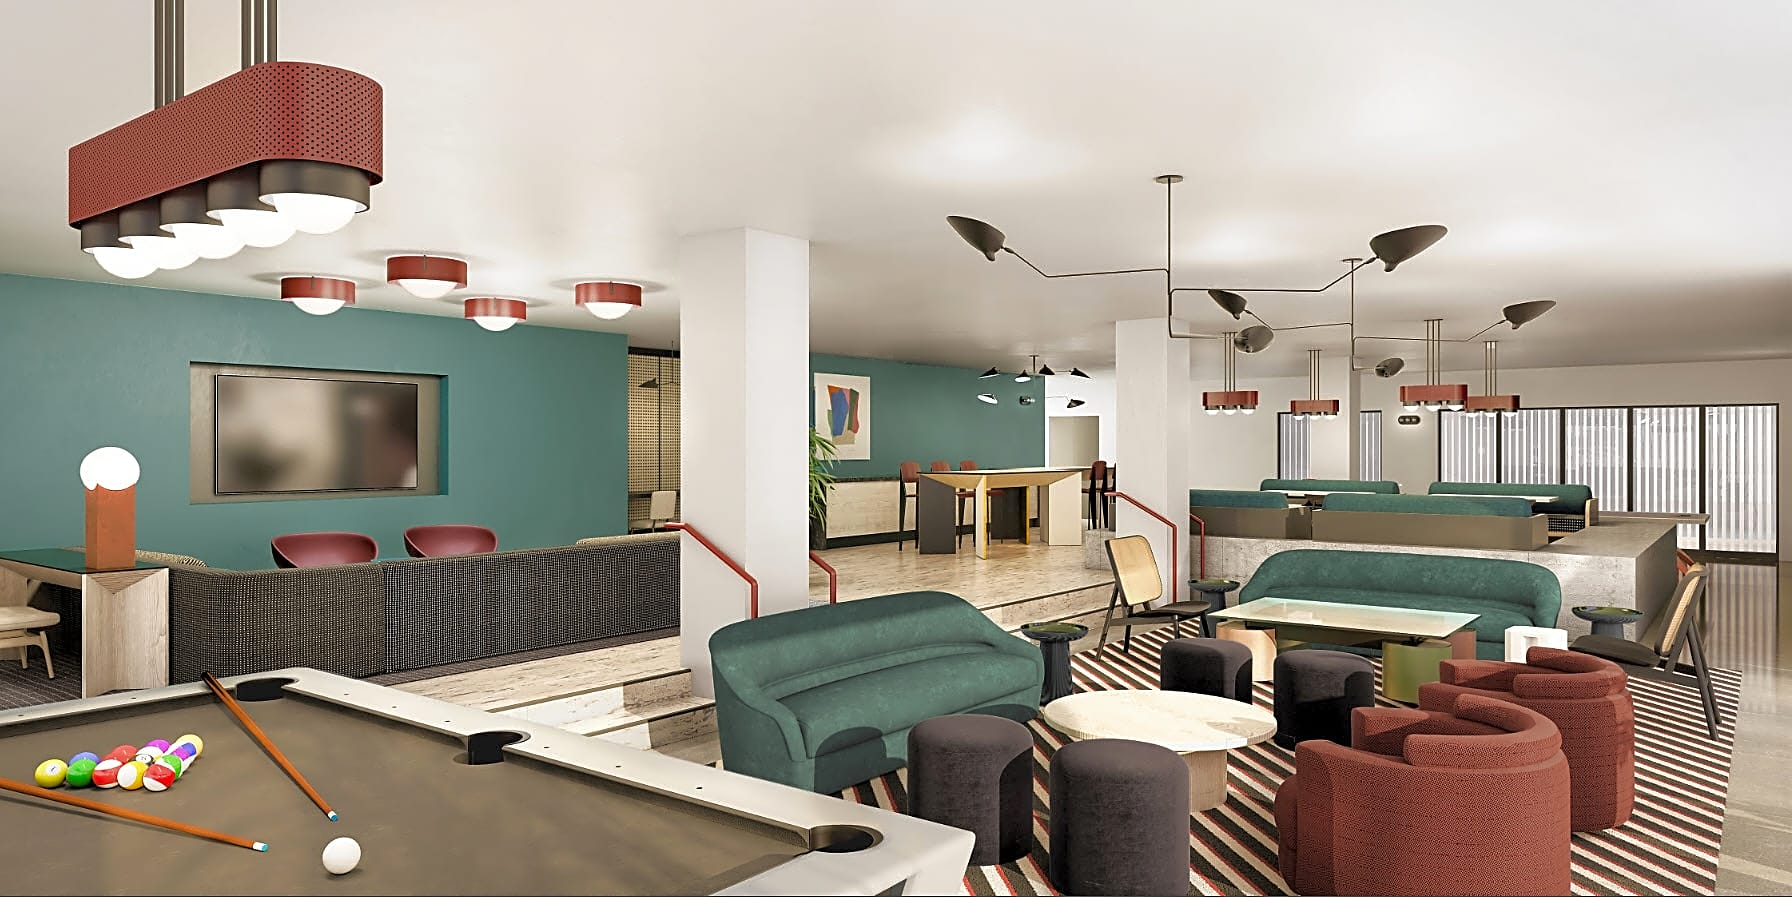 Newly Designed Game Room & Resident Lounge Coming Soon!  *Rendering may not reflect final installation.